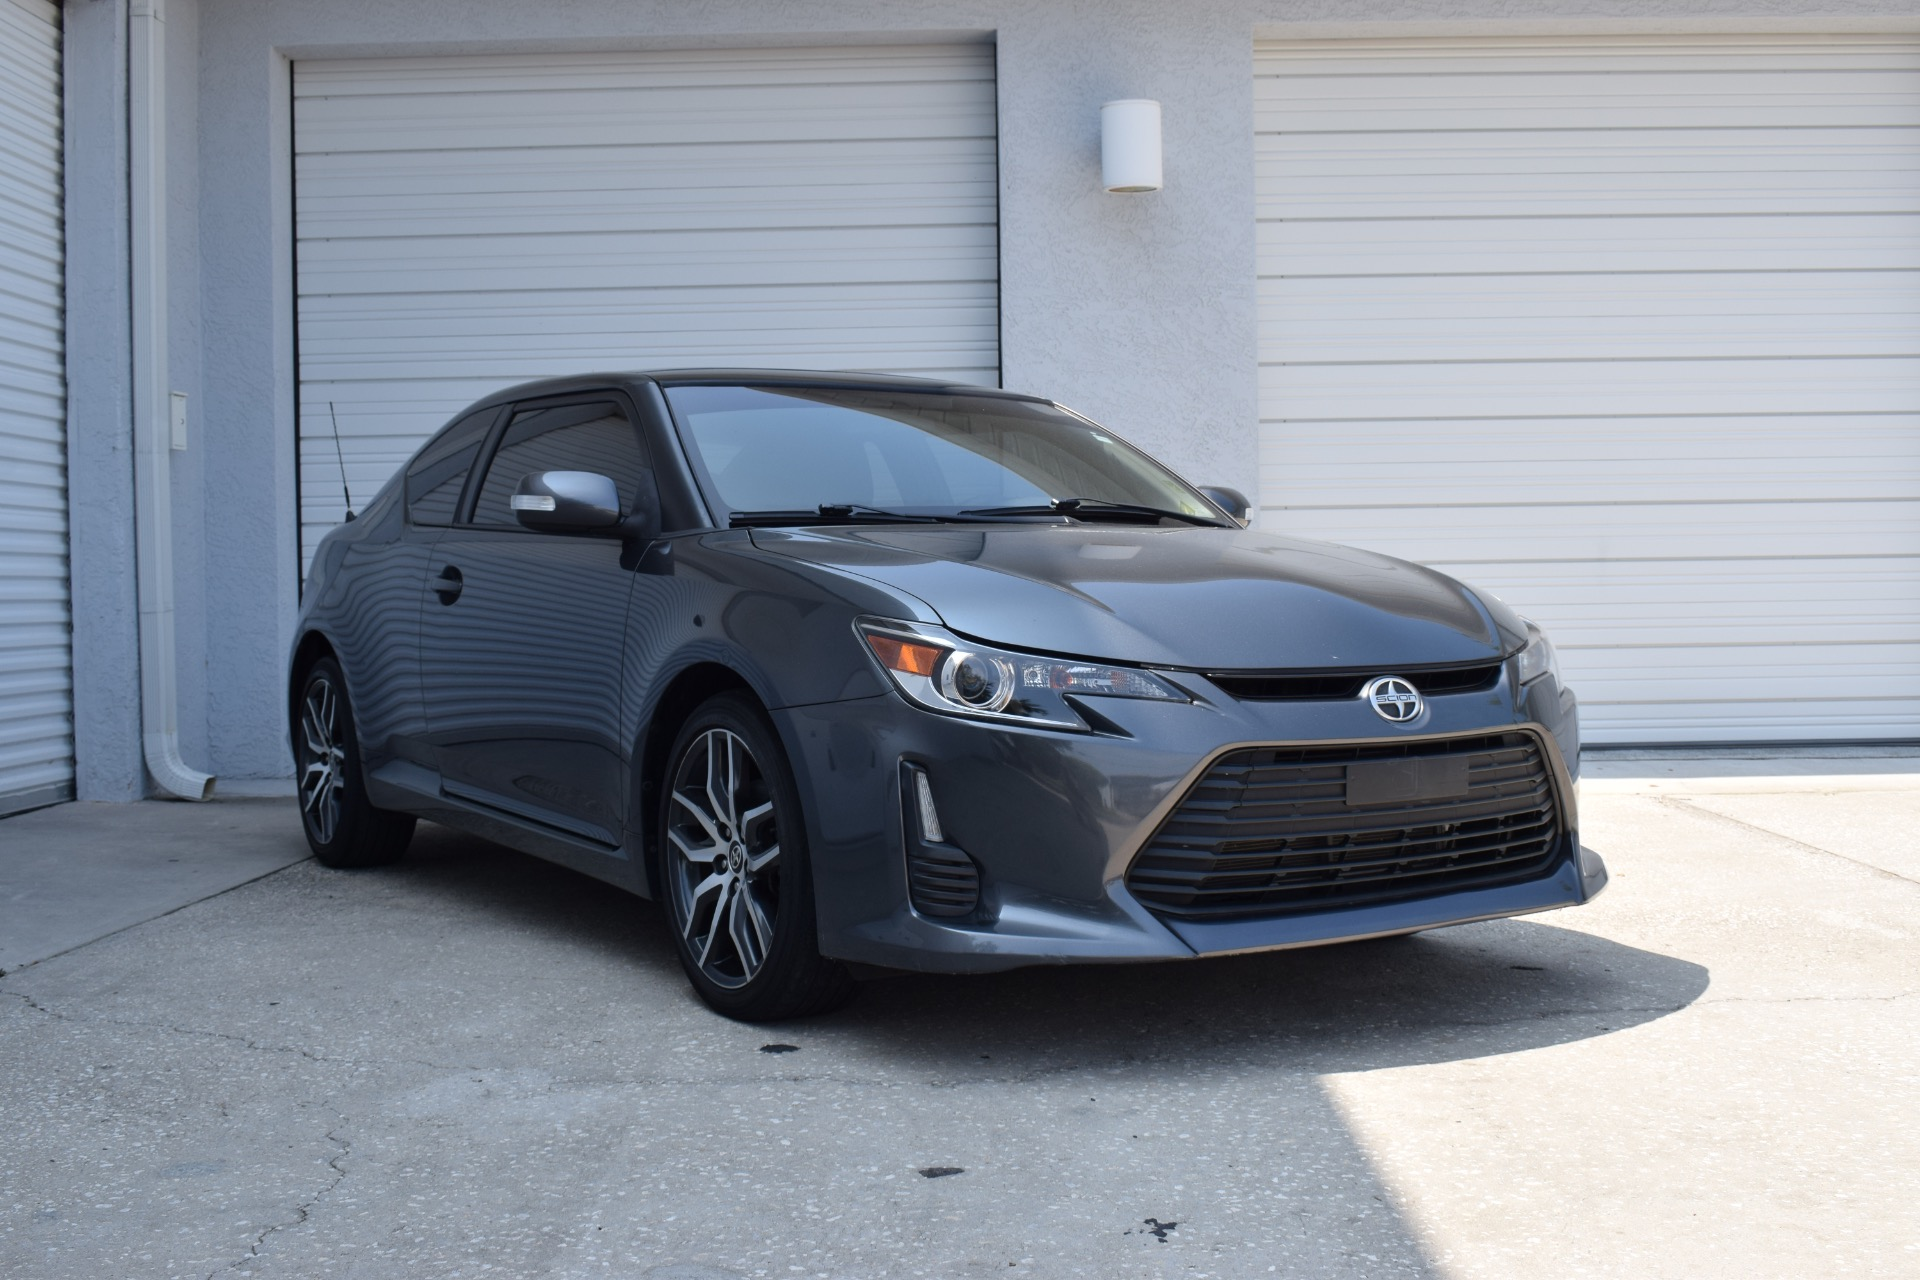 Used 2014 Scion tC Hatchback Coupe 2D for sale Sold at Track and Field Motors in Safety Harbor FL 34695 1